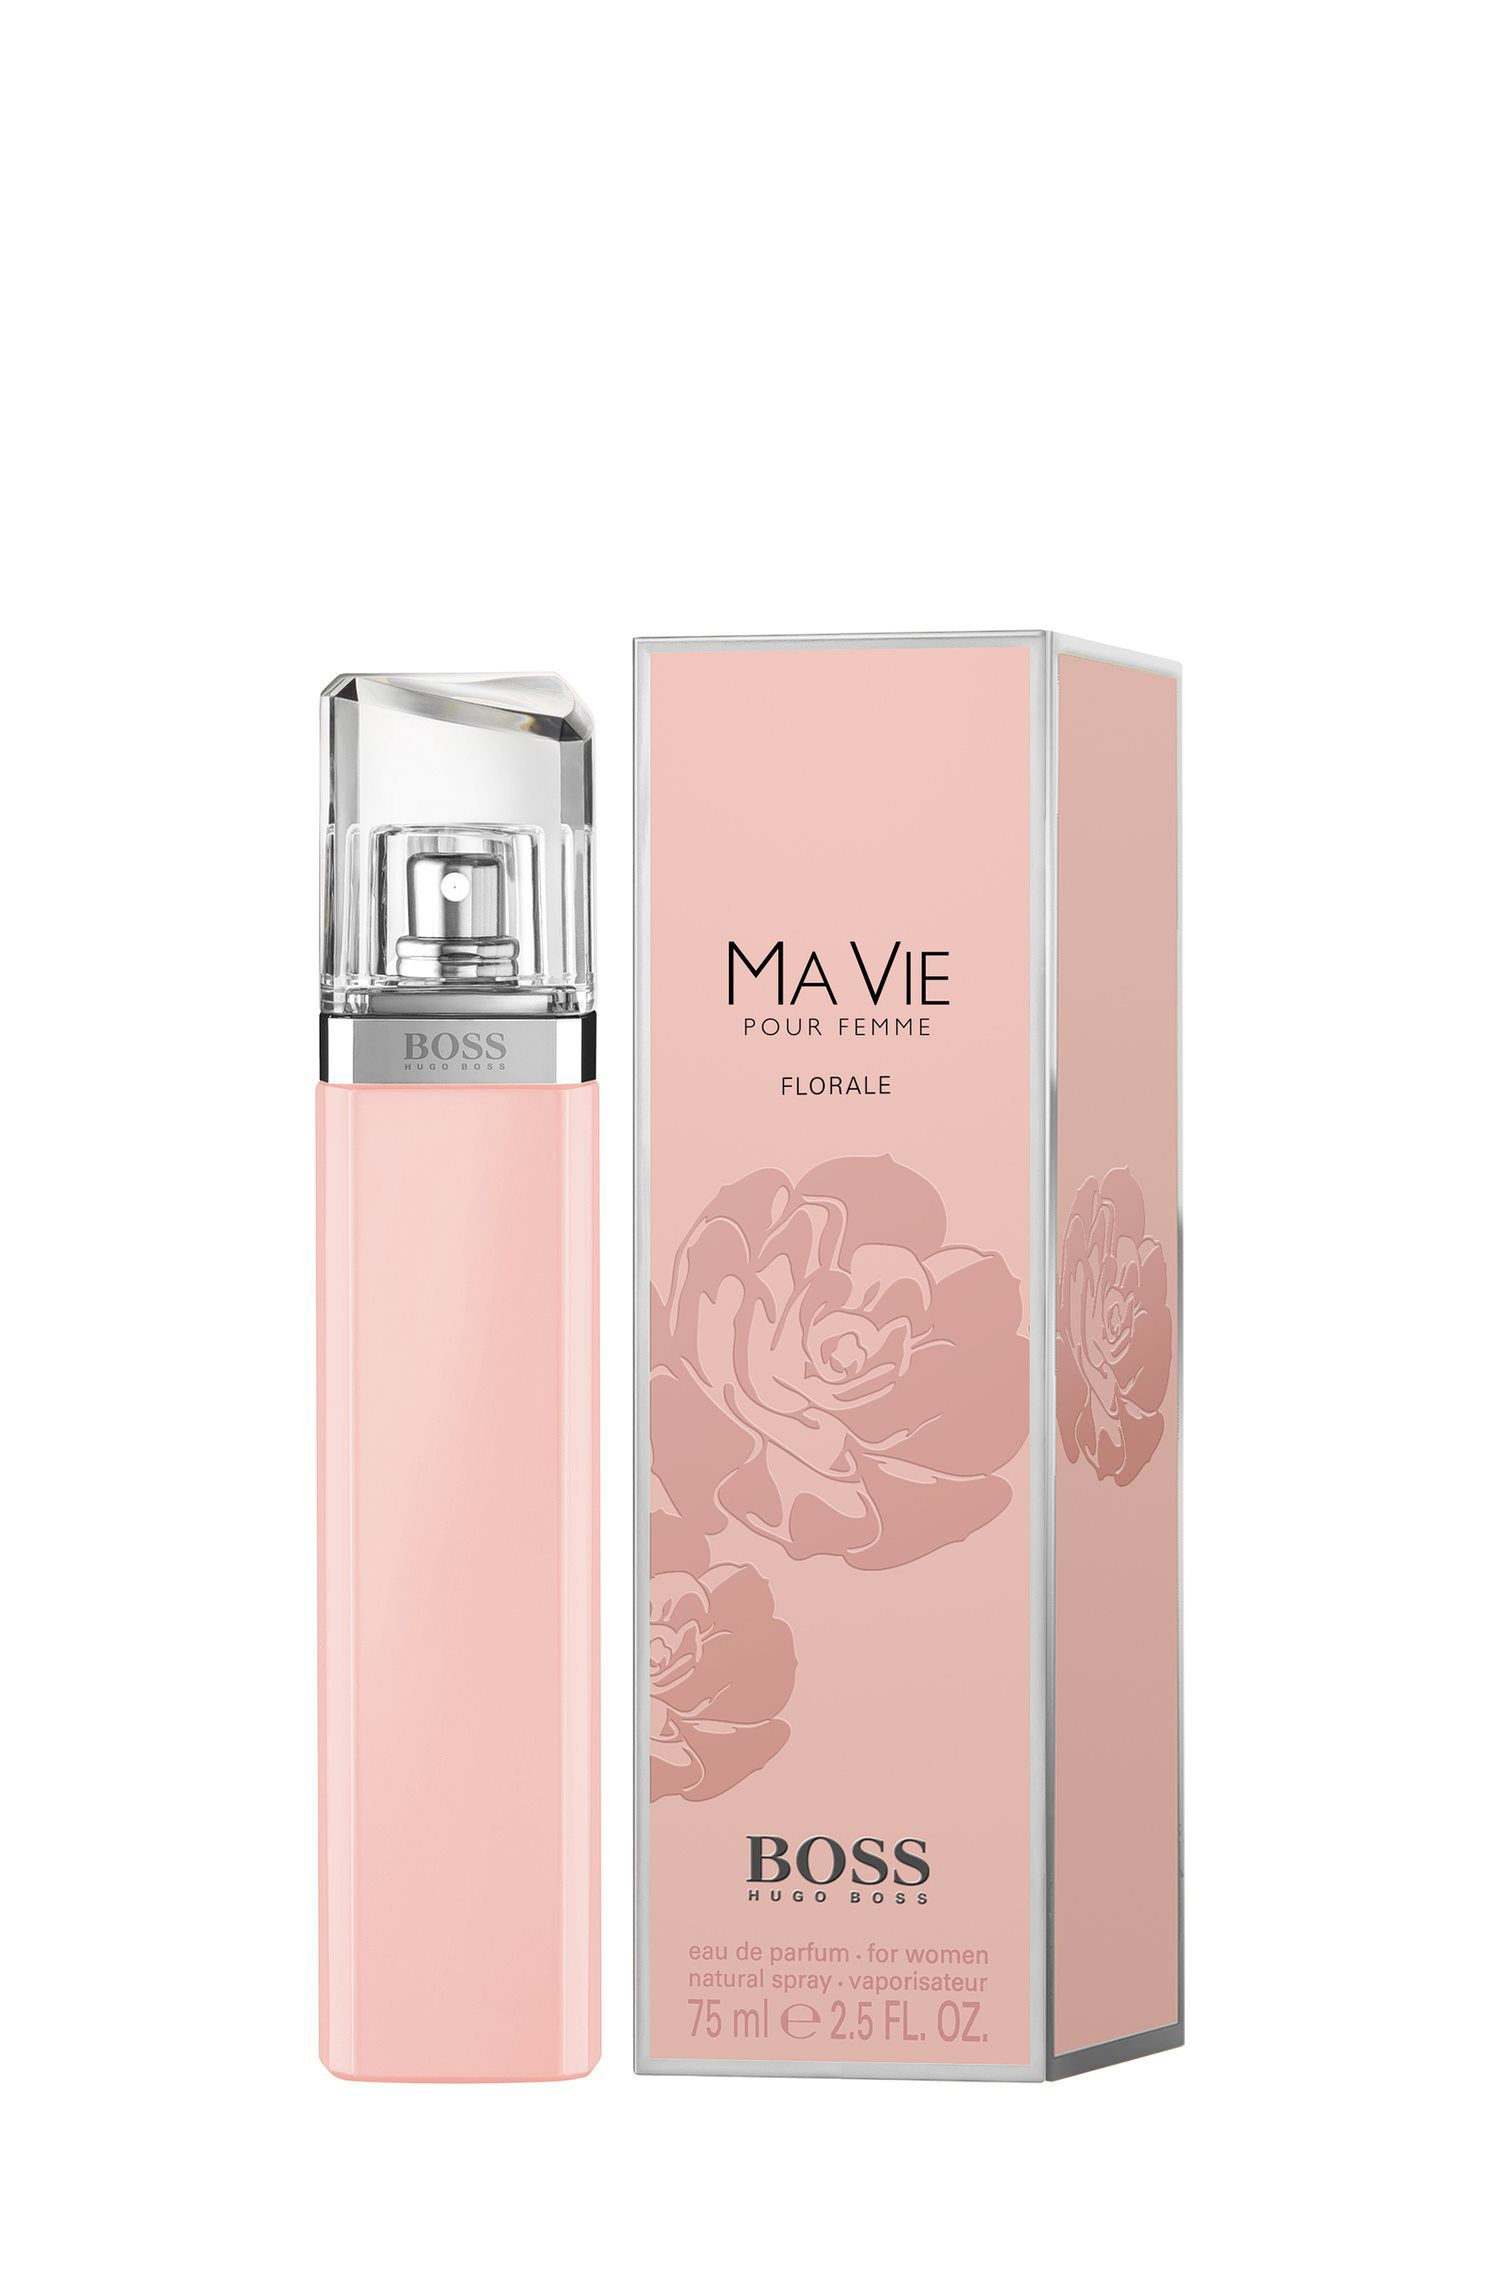 BOSS Ma Vie Florale eau de parfum 75ml, Assorted-Pre-Pack